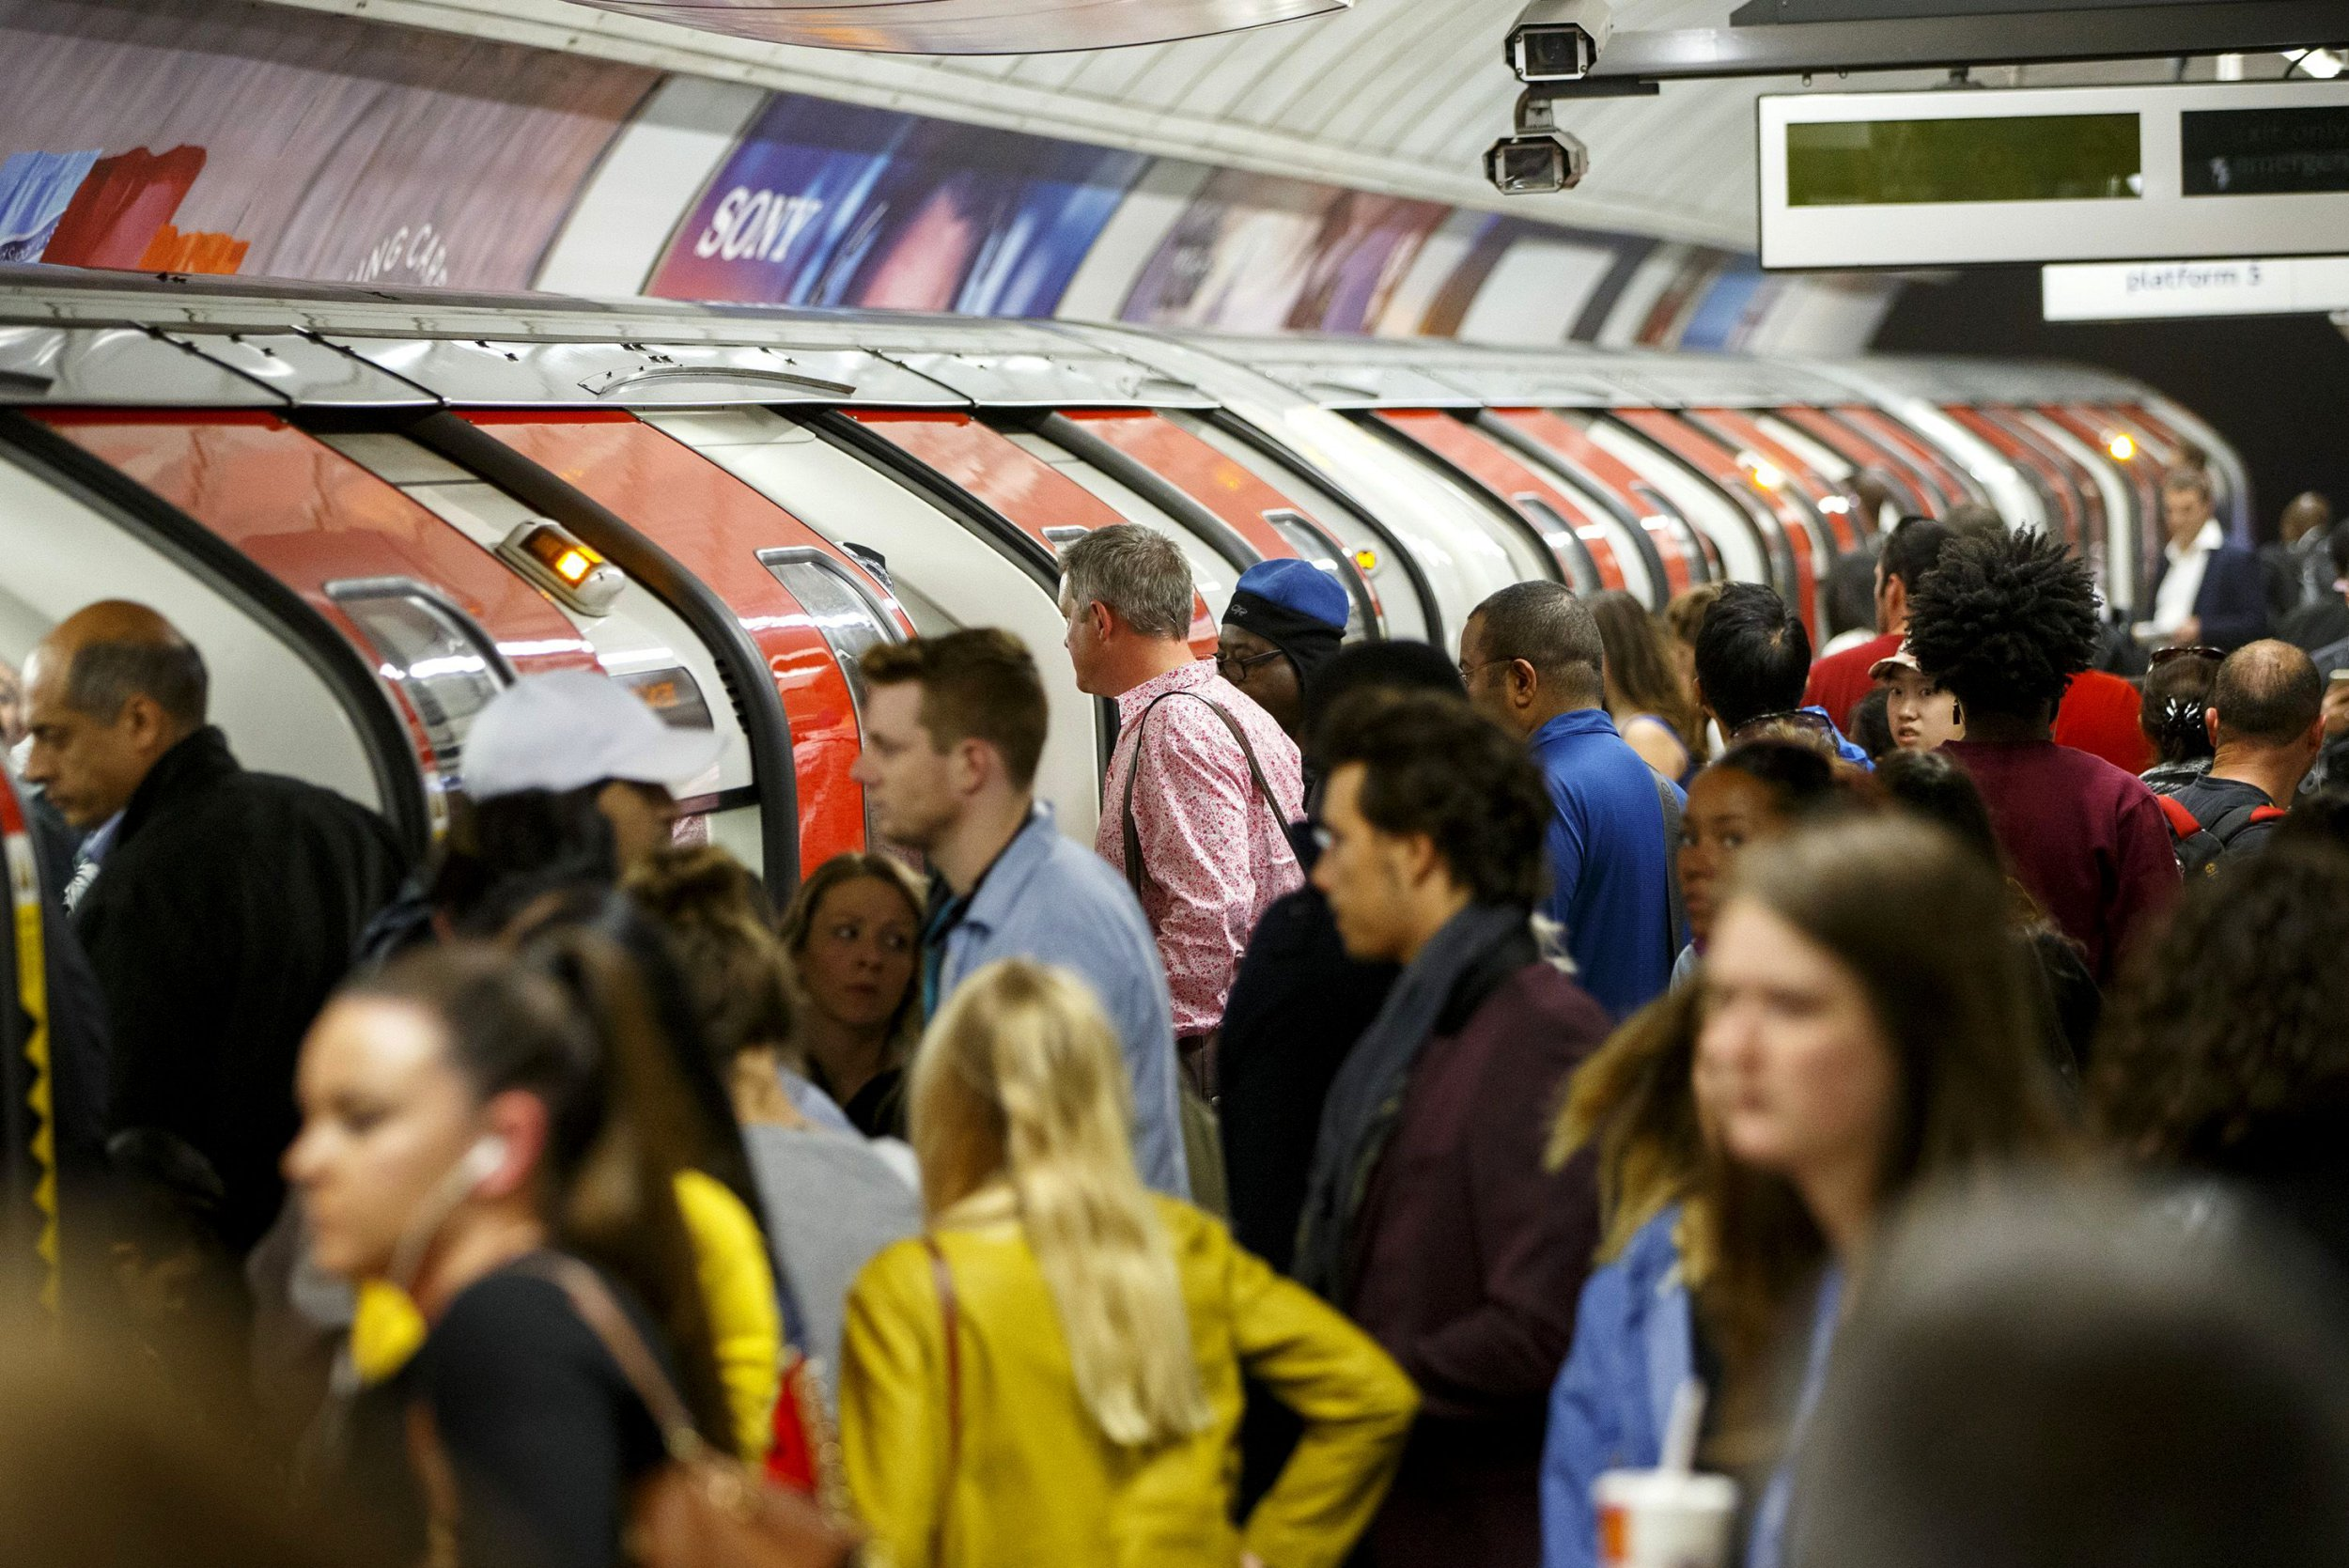 There's going to be another Tube strike just in time for Christmas